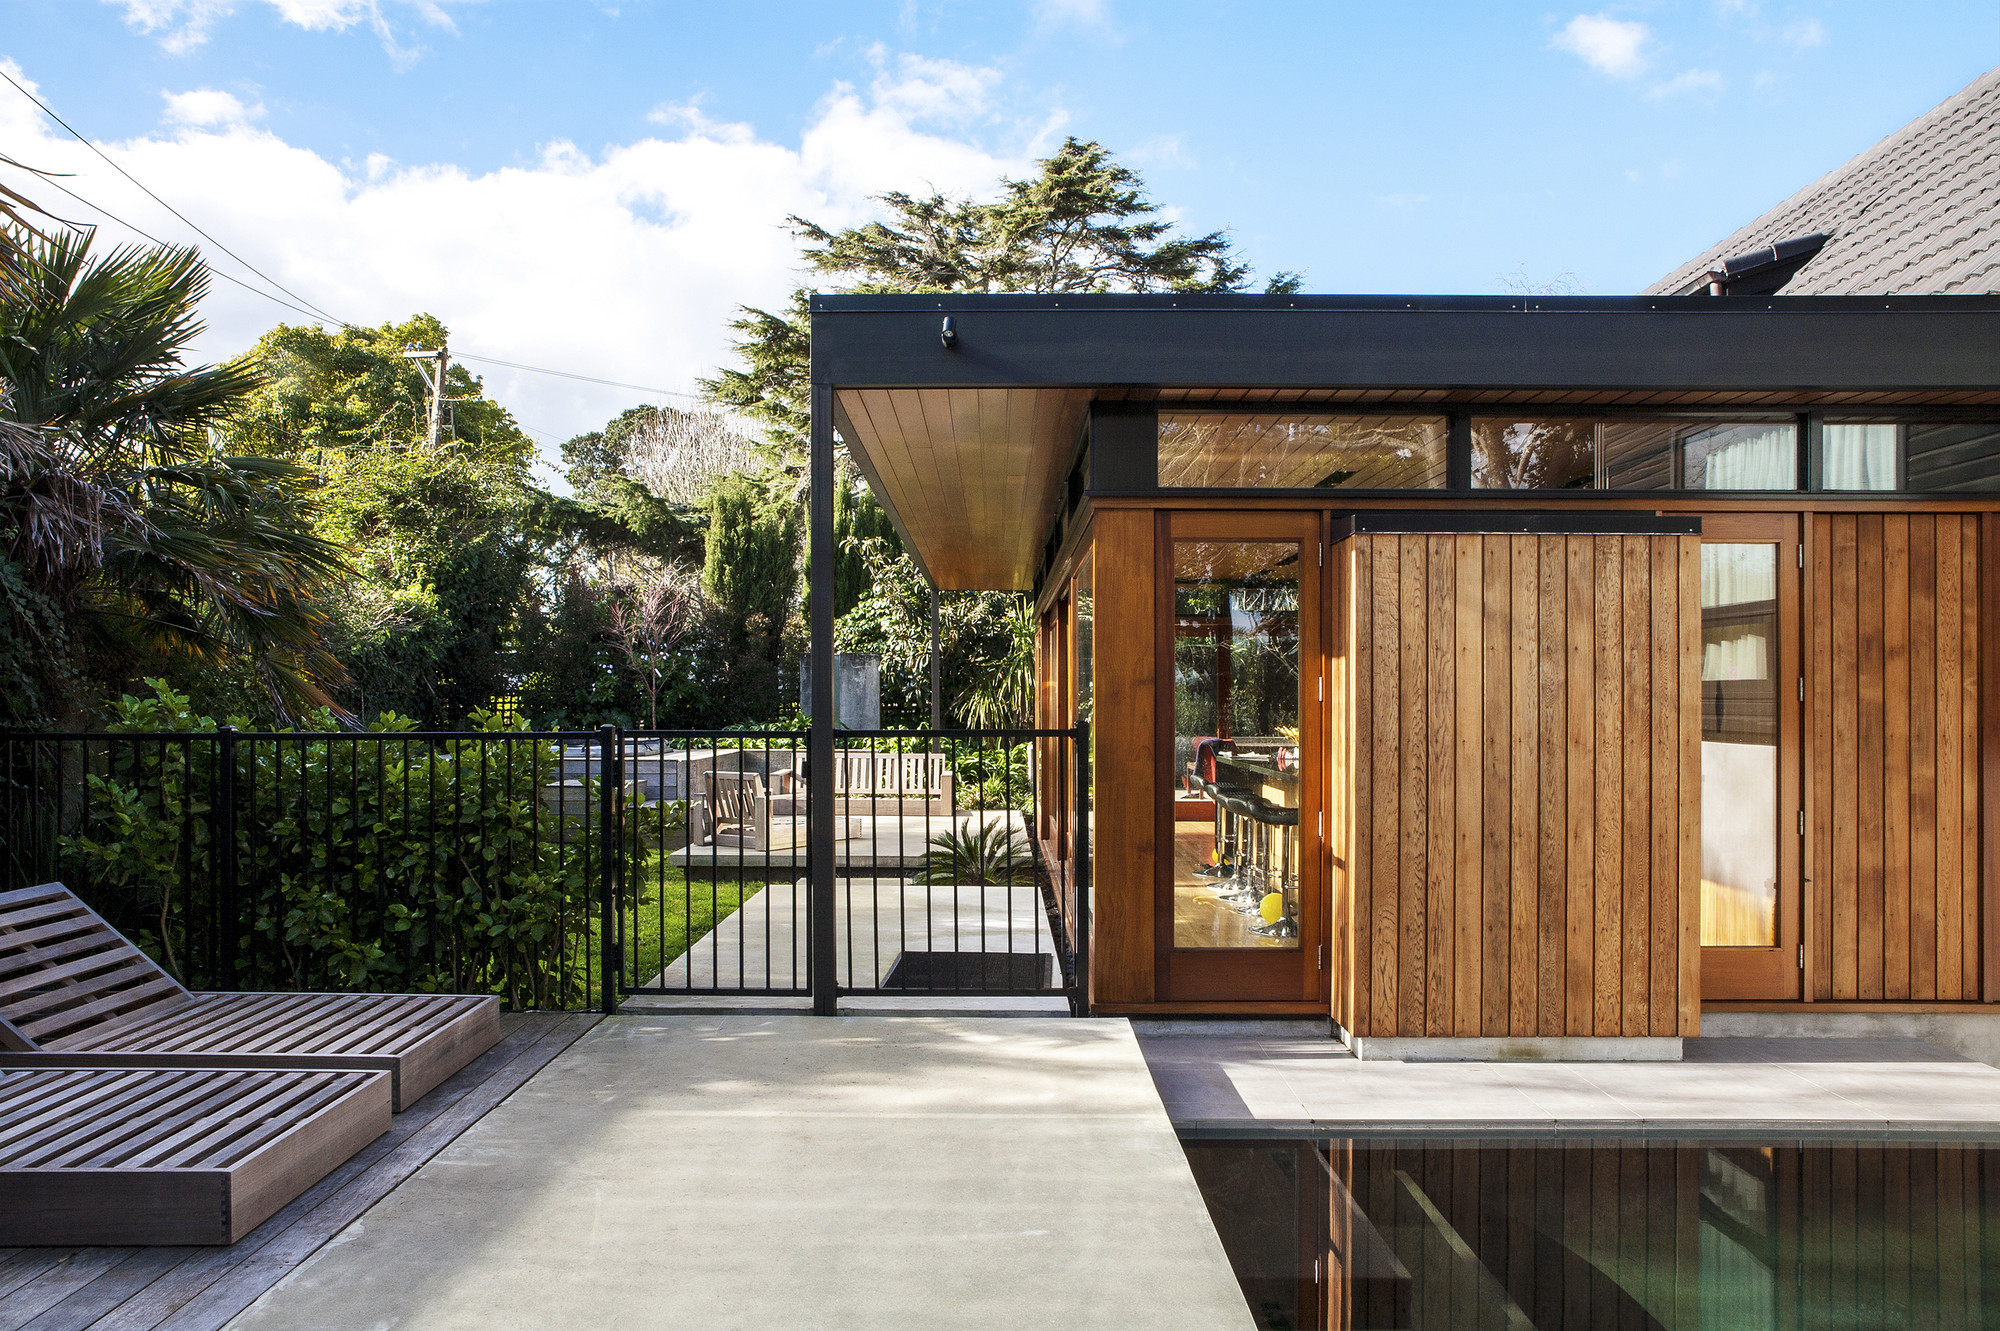 Galeria de Marine Parade / Dorrington Atcheson Architect - 6